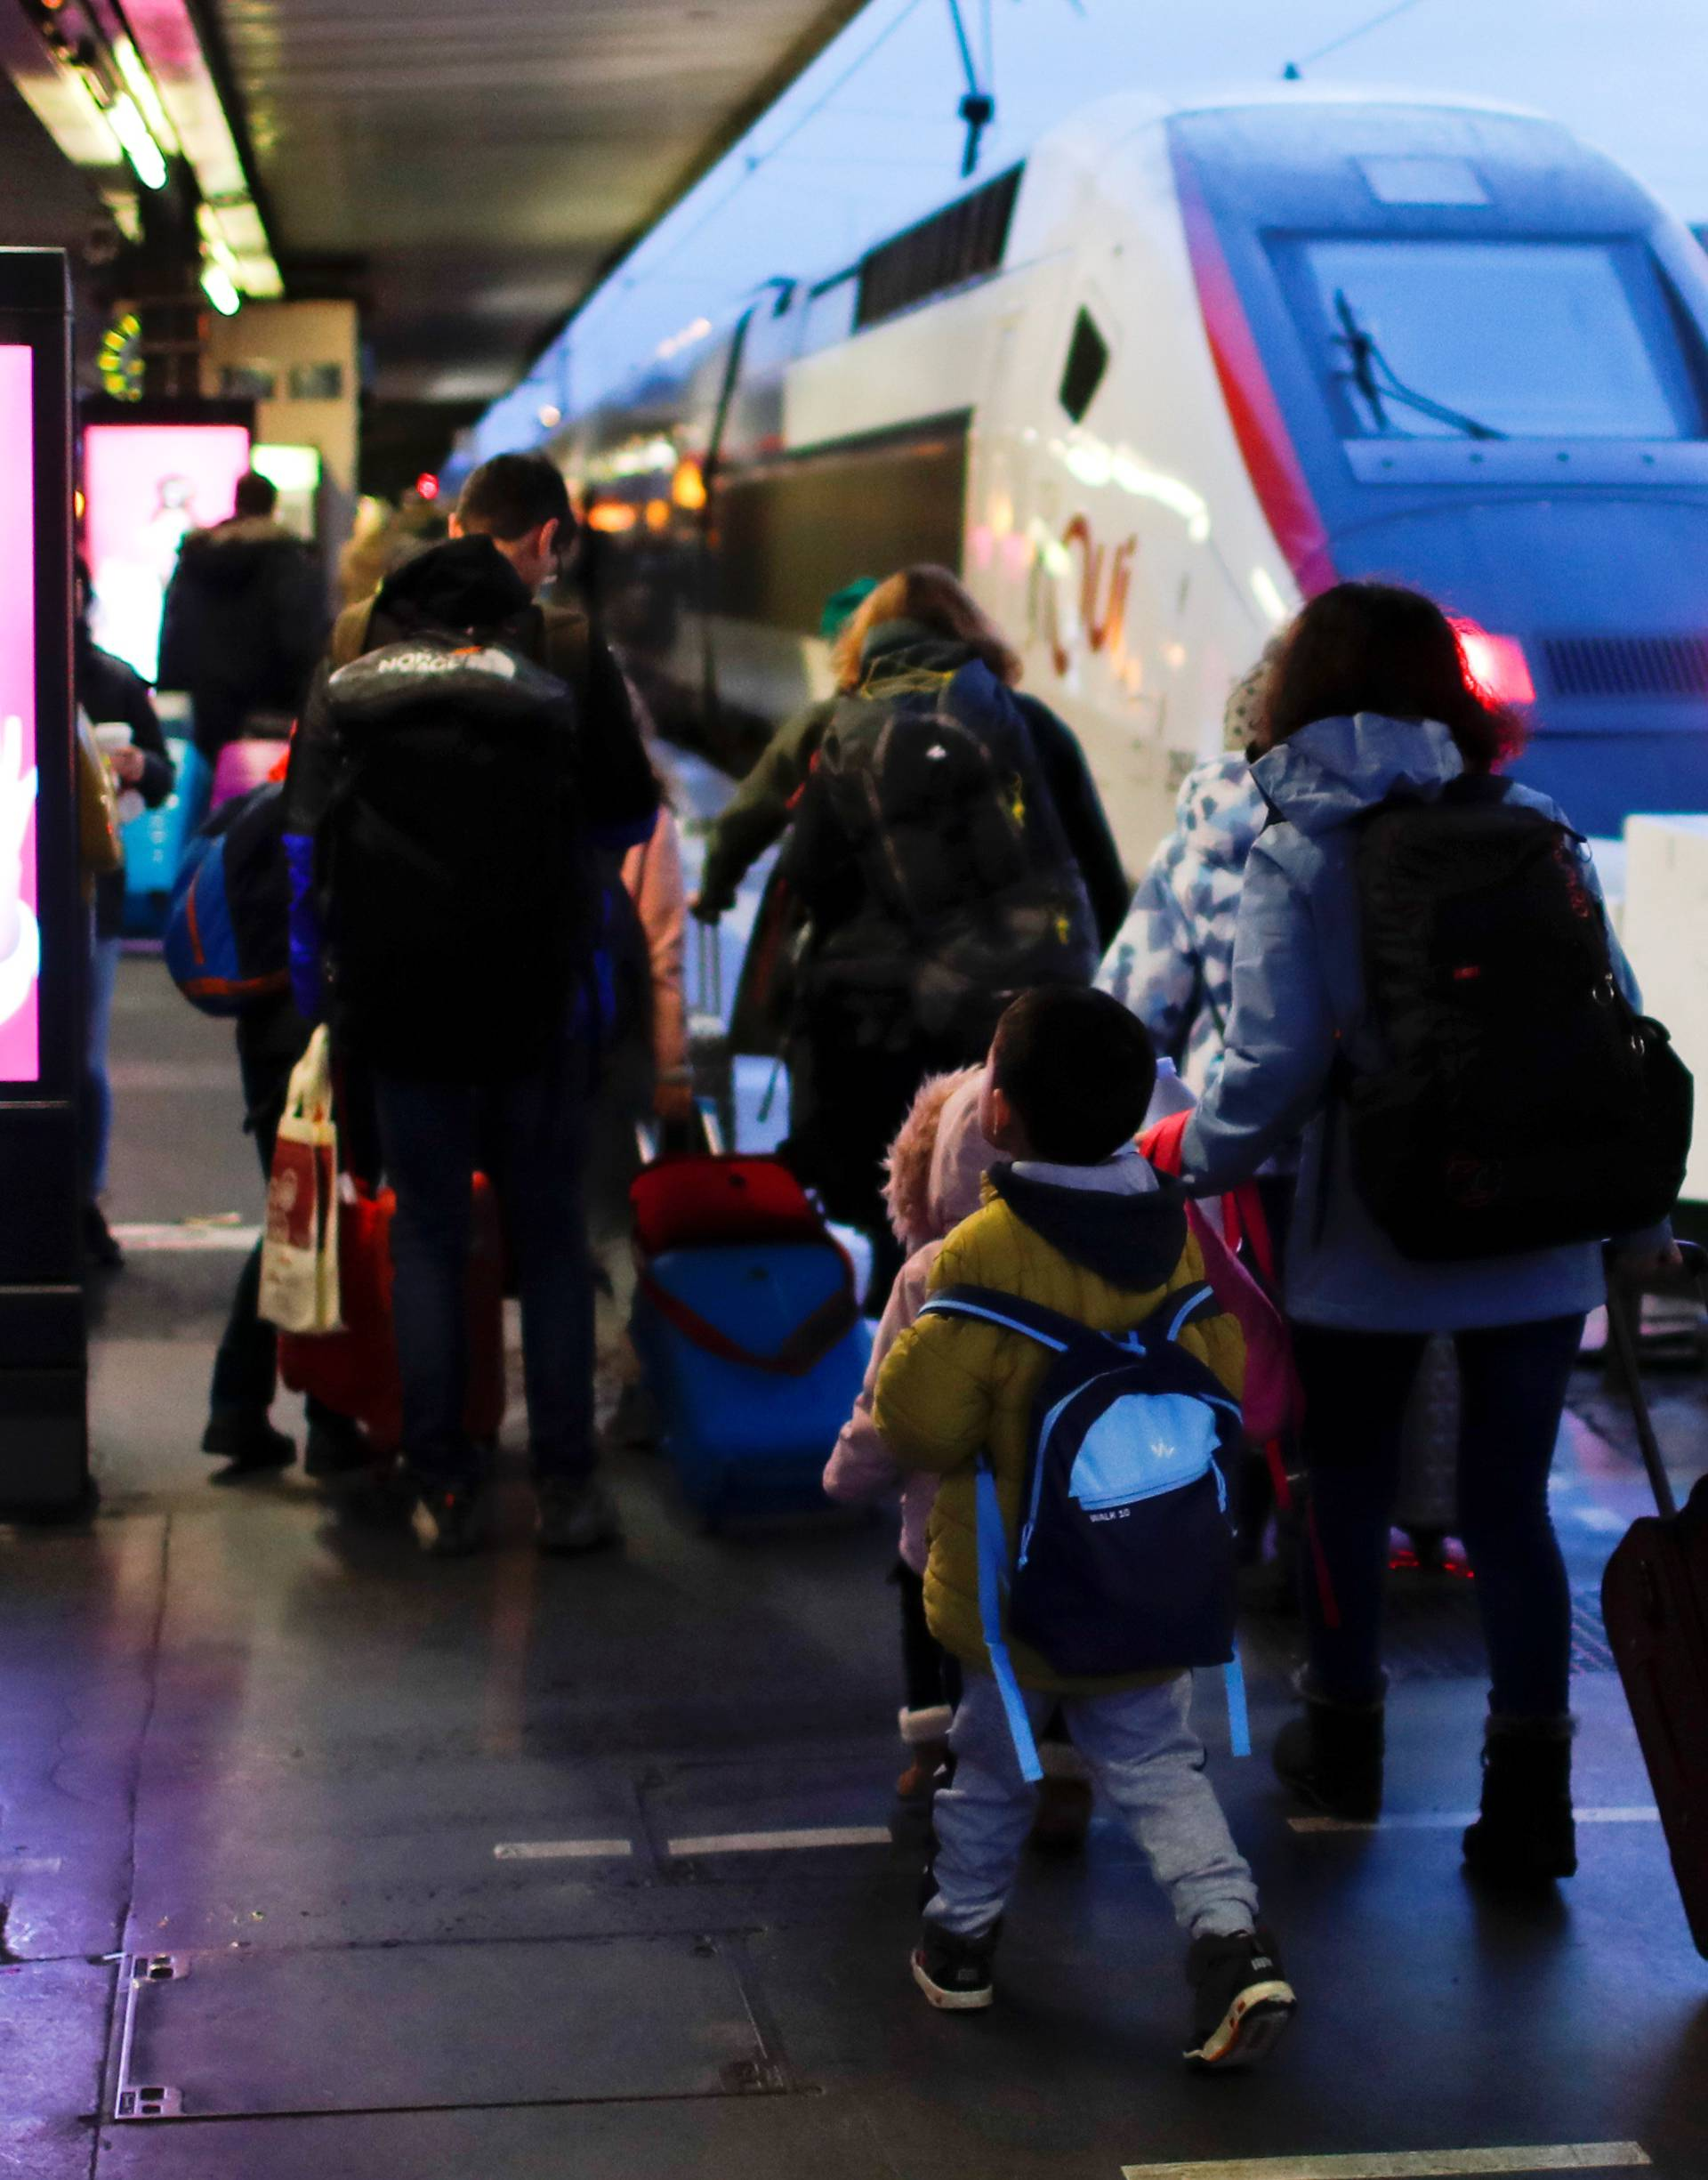 "Minors traveling with service for unaccompanied children ""Junior et compagnie"" walk at Gare de Lyon train station in Paris"